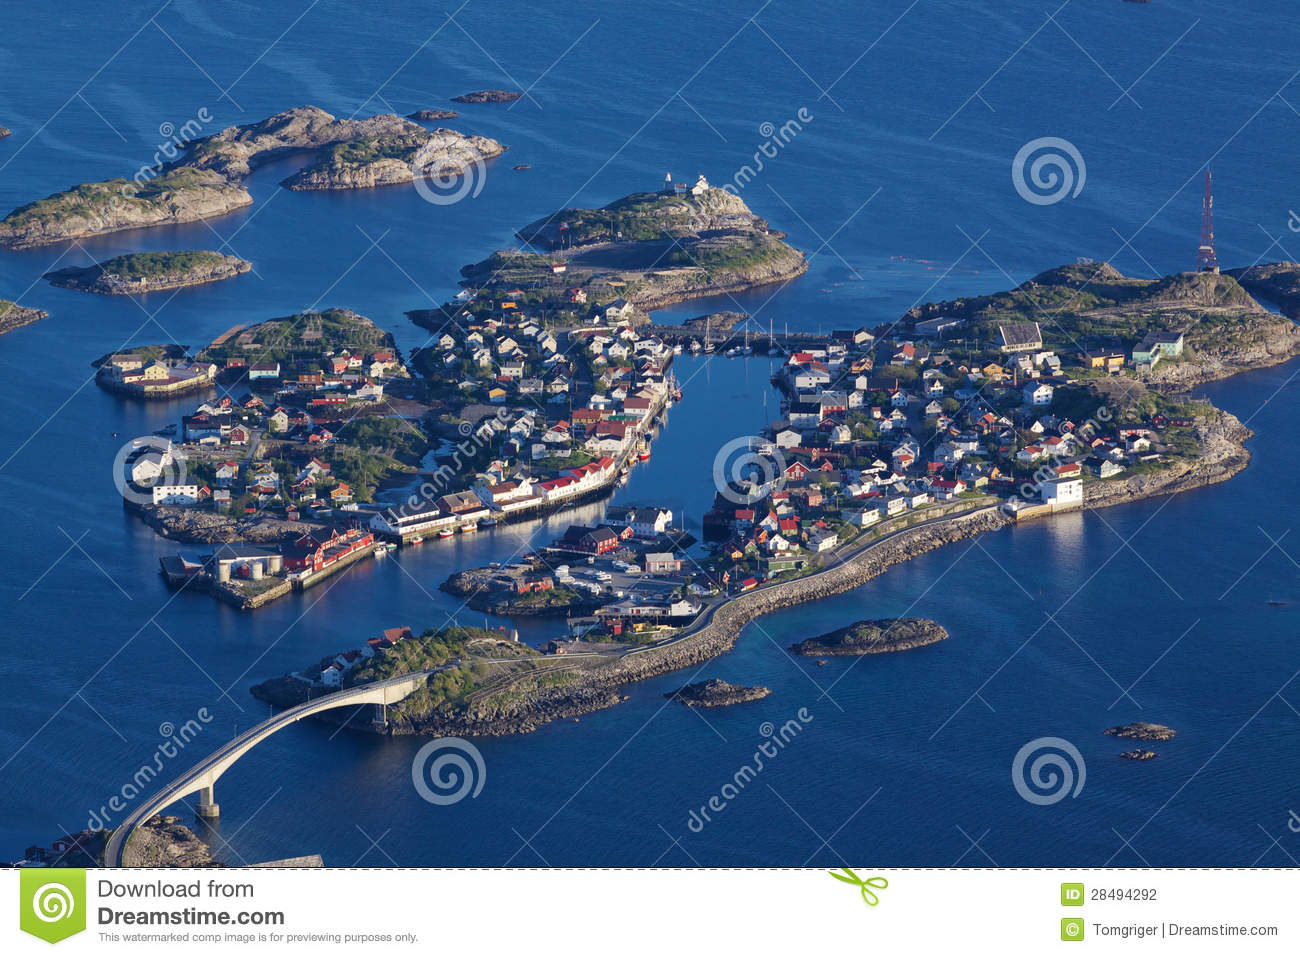 va road map with Stock Photography Scenic Henningsvaer Image28494292 on Virginia furthermore LocationPhotoDirectLink G294305 D12291641 I250407033 Vapiano Santiago Santiago Metropolitan Region as well Le Bujo Pour Organiser Ses Vacances En Famille together with Hollywood Forever Cemetery Pay Your Respects To Johnny Ramone Jayne Mansfield On Route 66 furthermore Martinsburg Map.